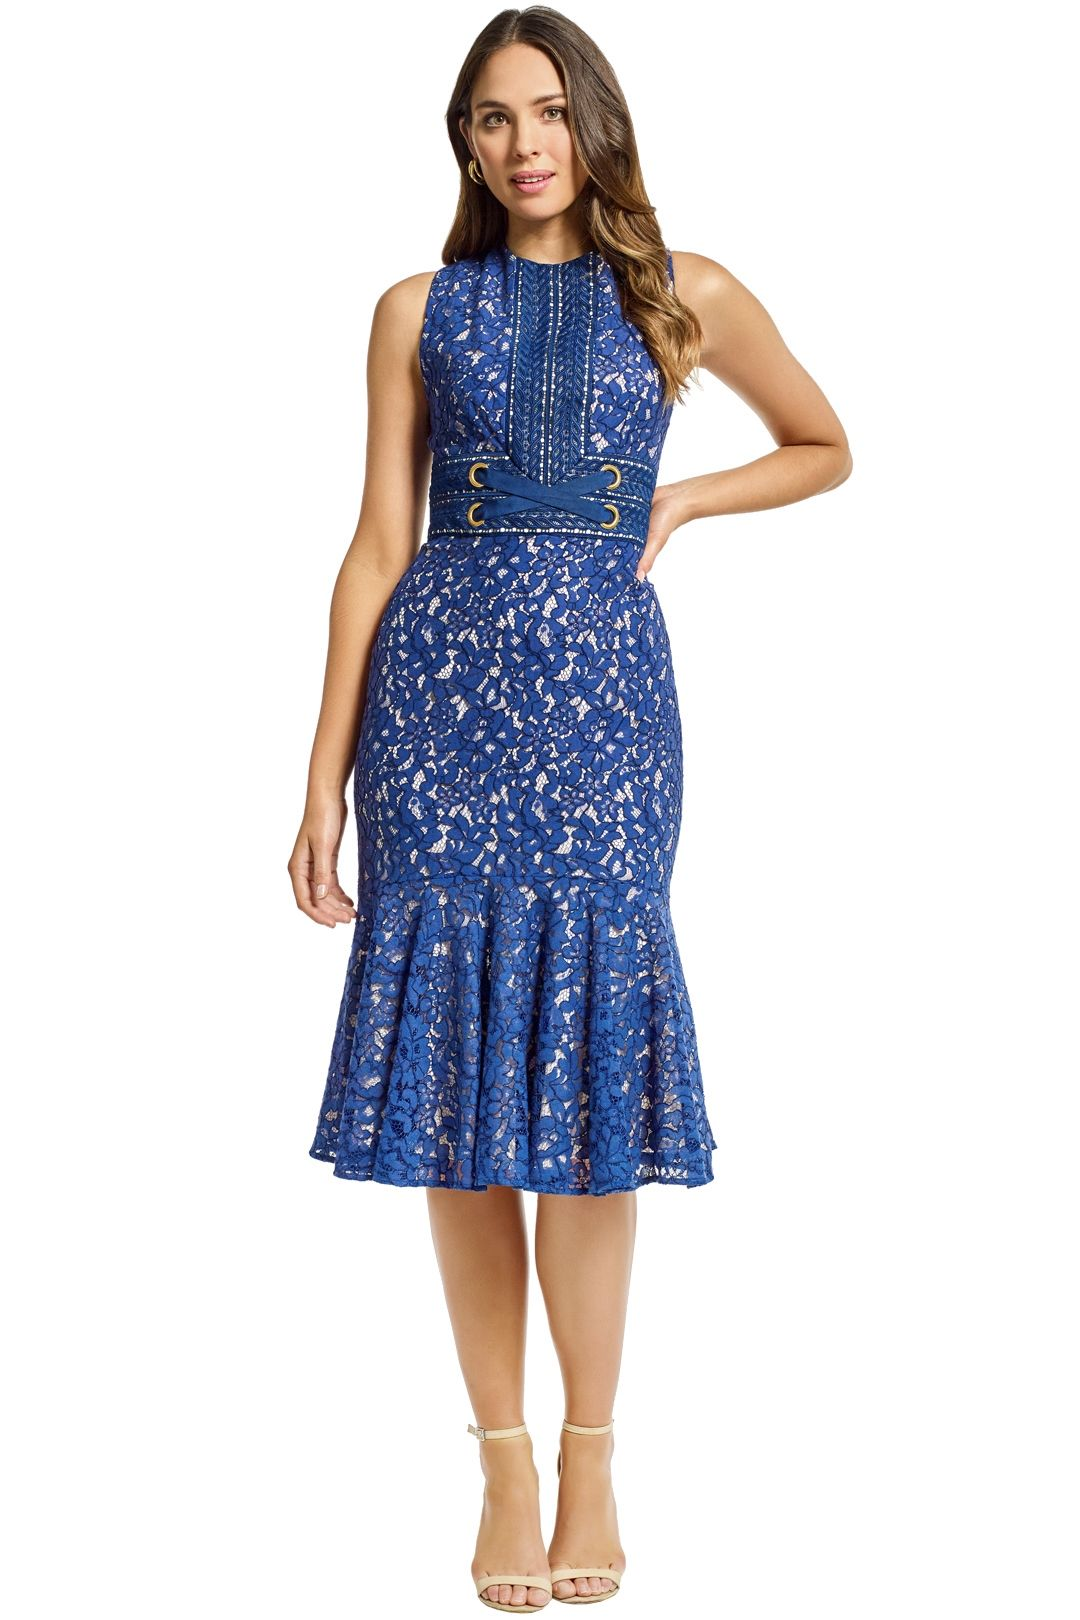 Lover - Flora Midi Dress - Indigo - Front